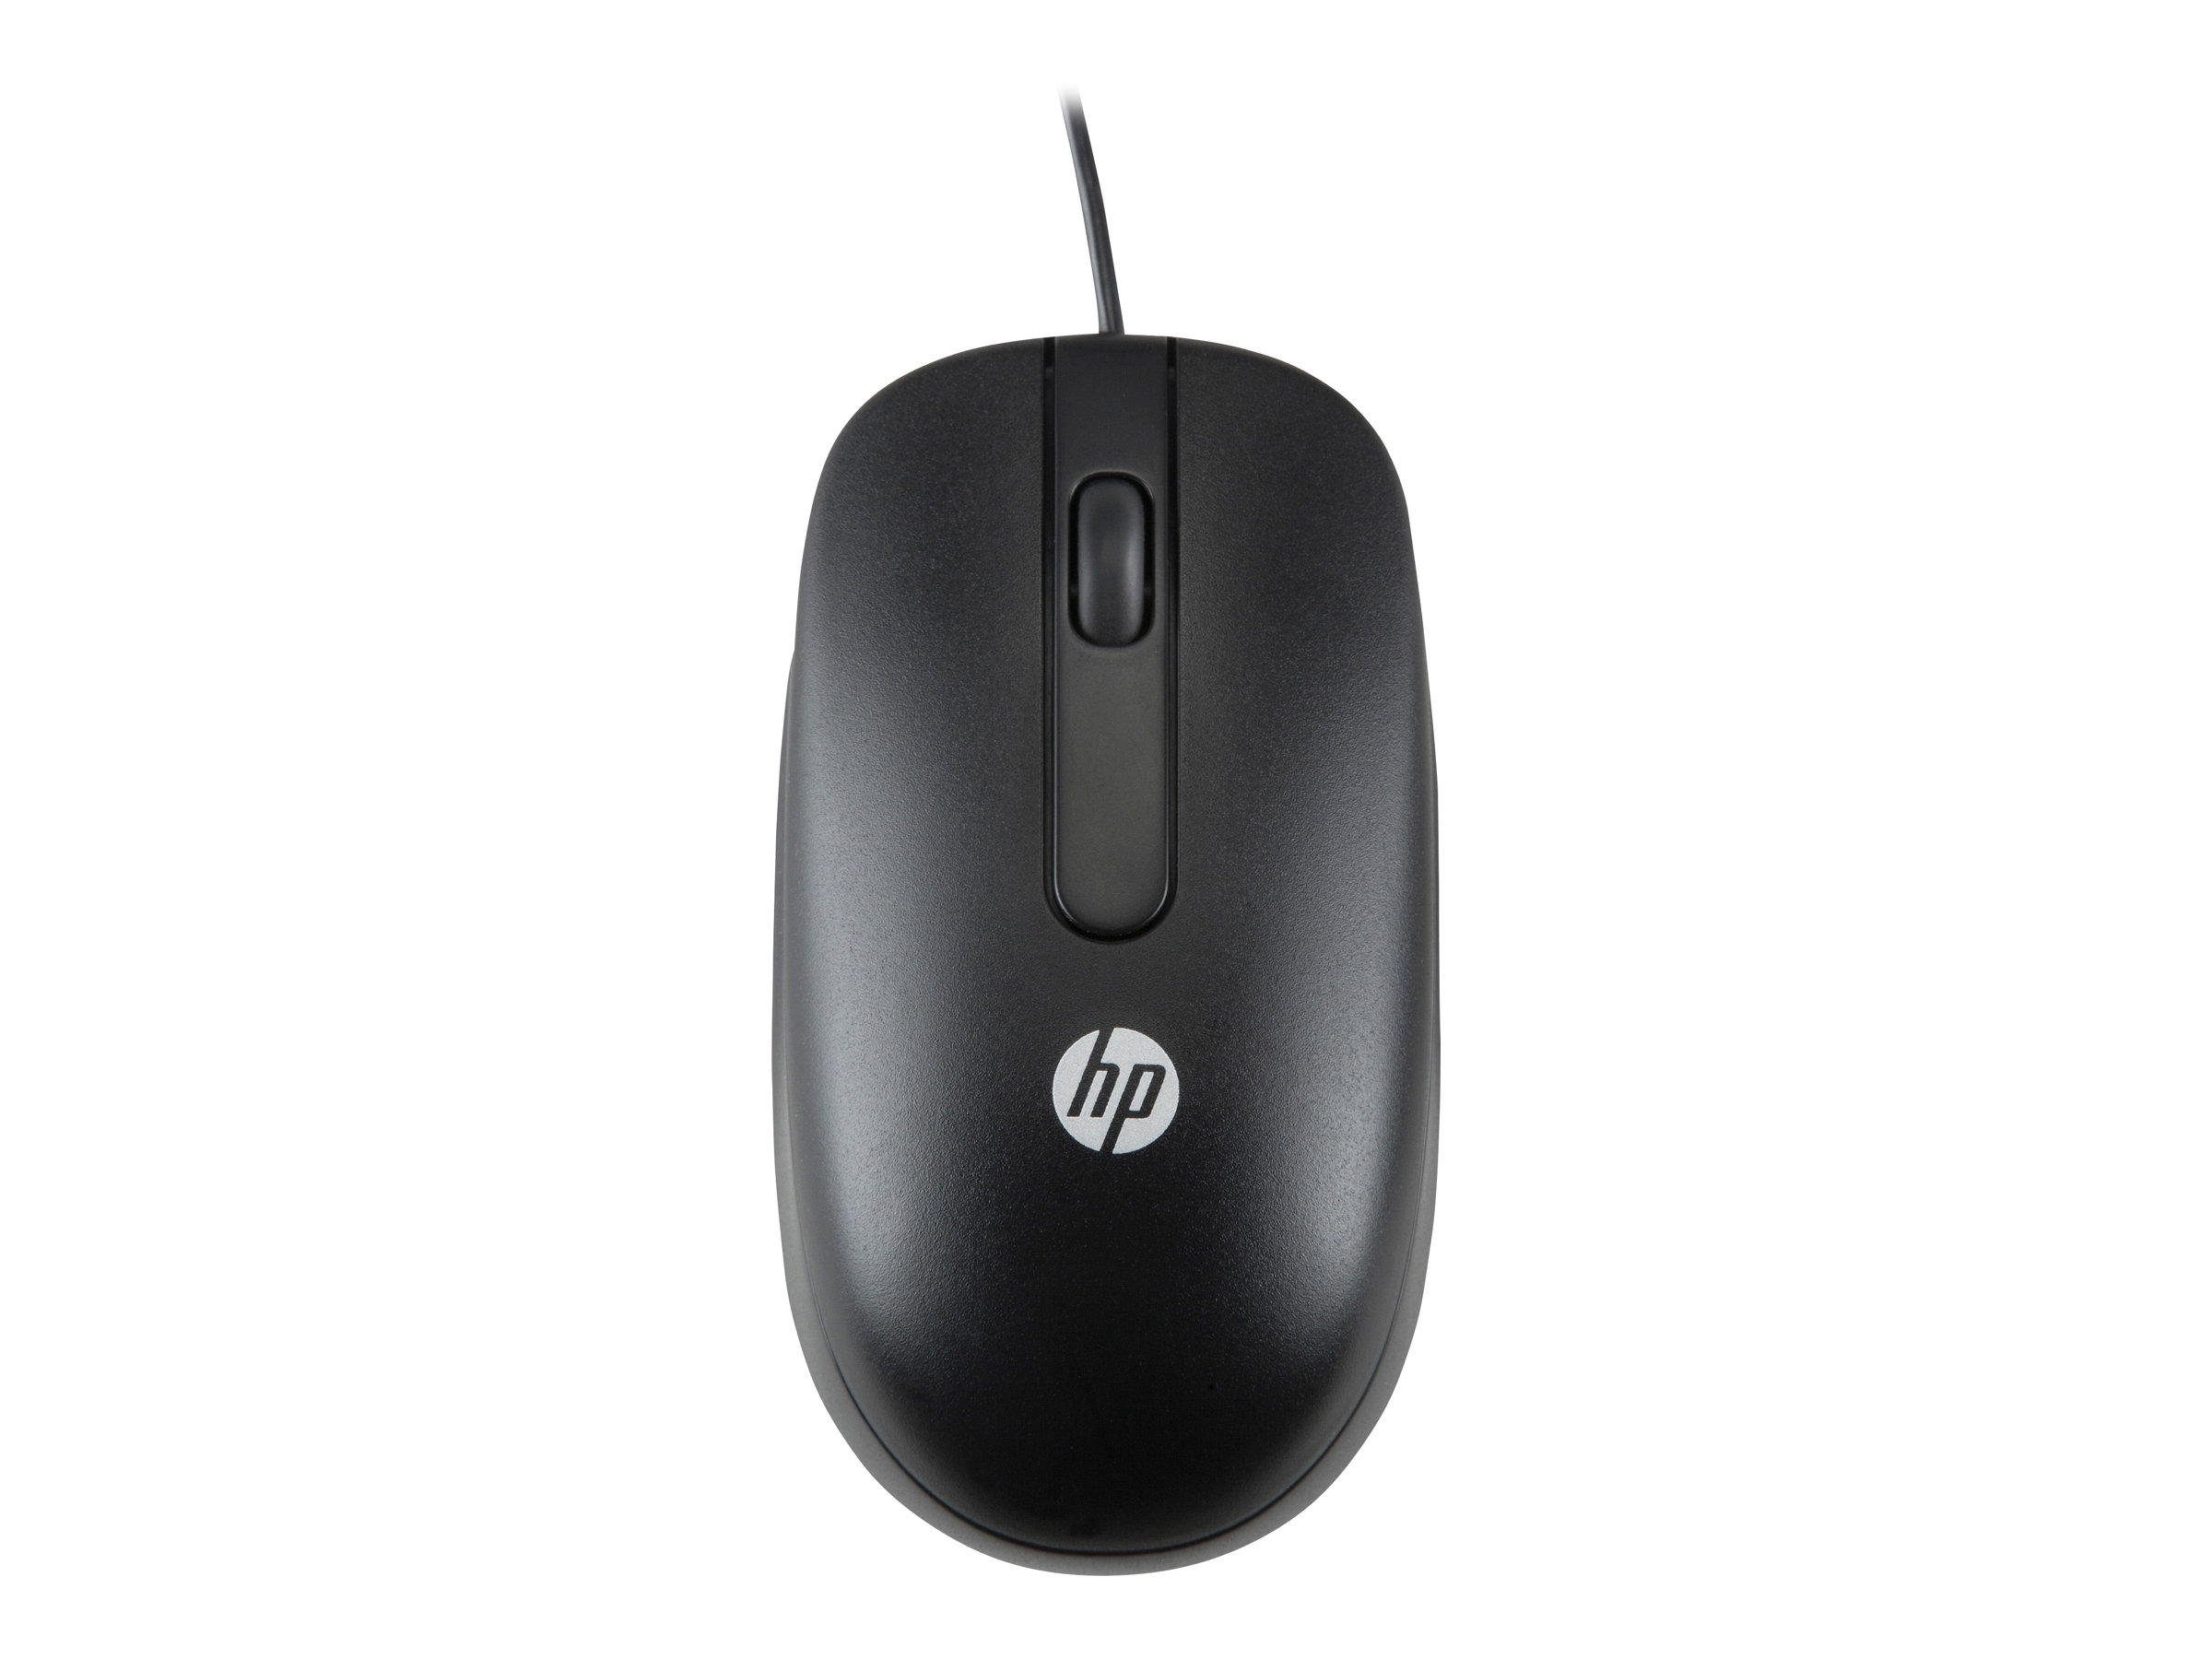 HP - mouse - USB